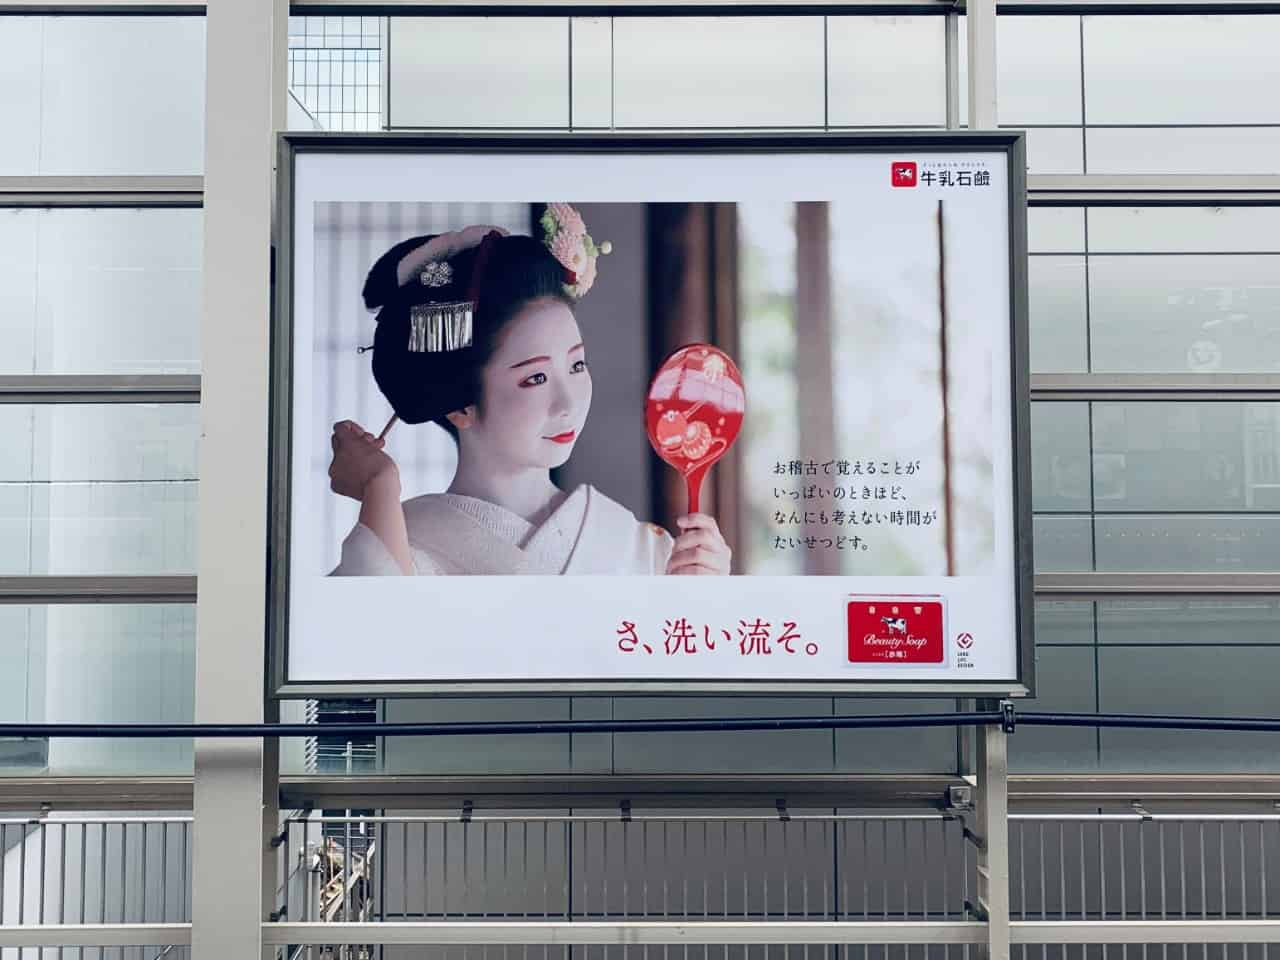 asian woman featured in an outdoor advertisement